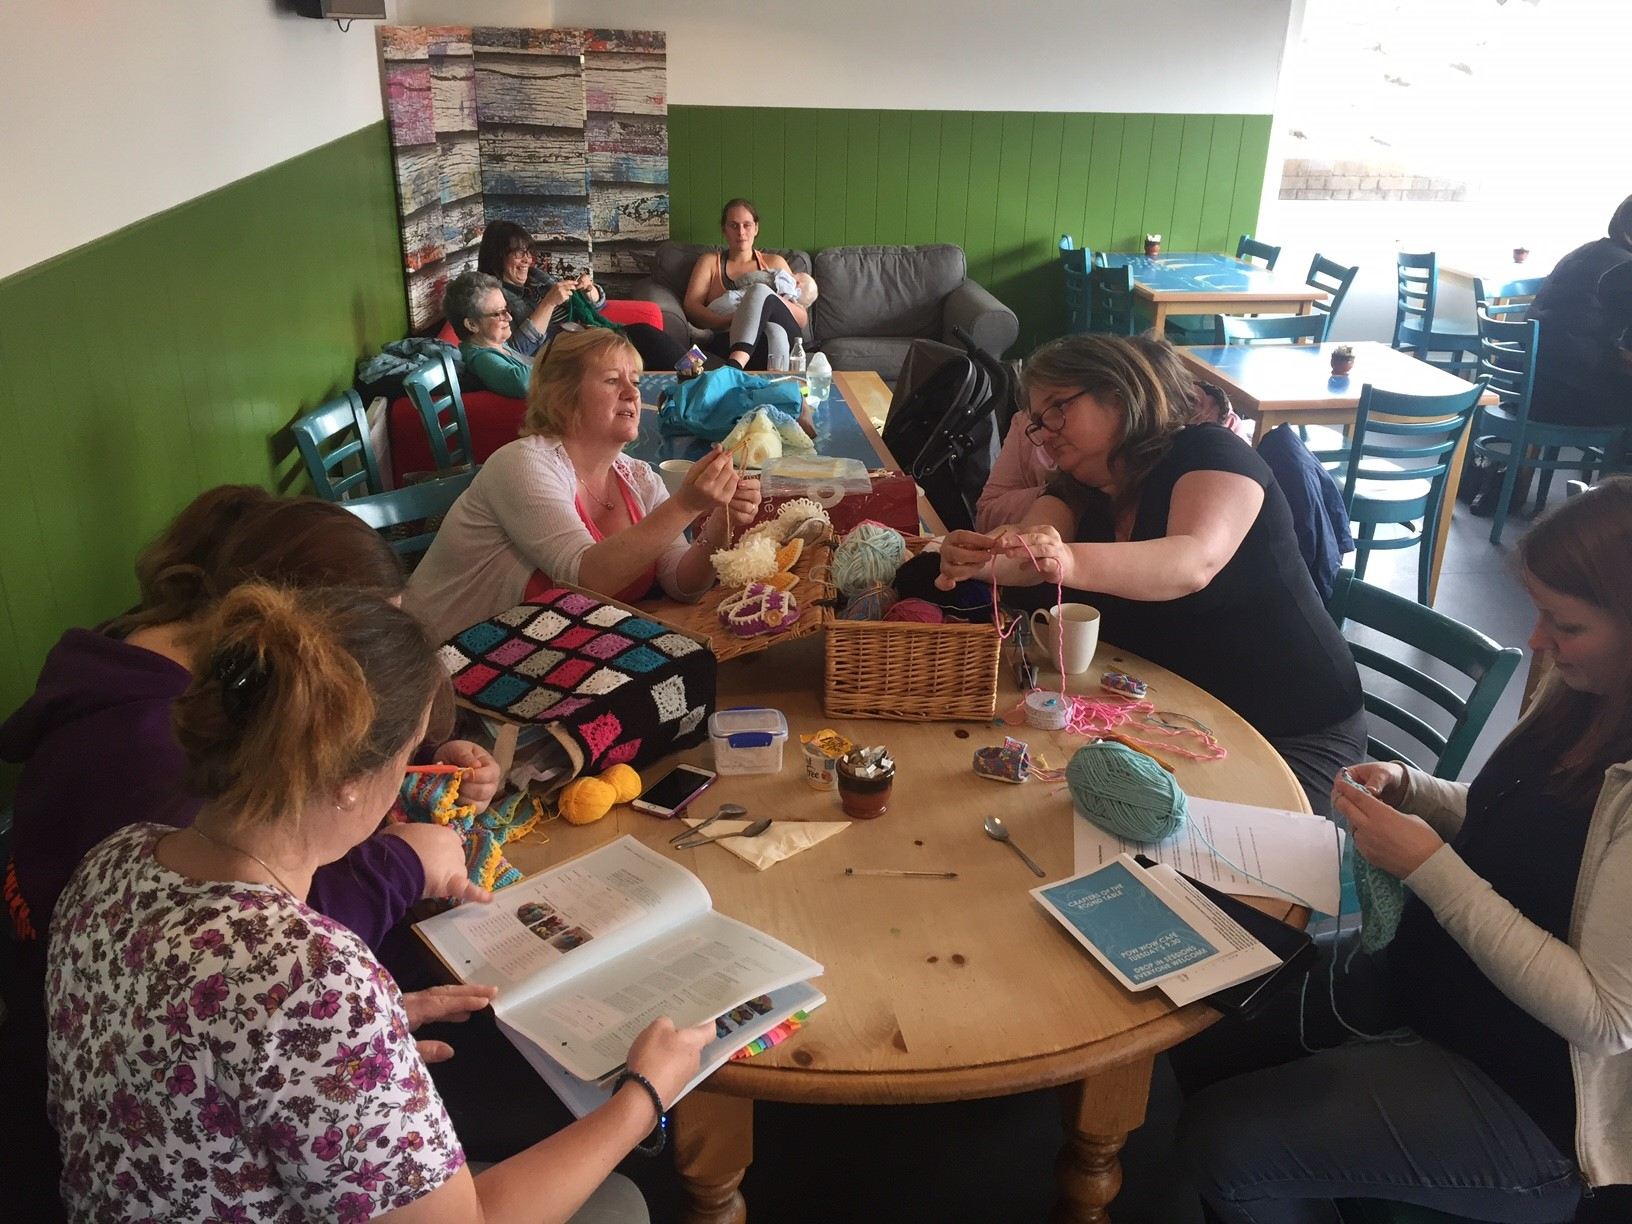 Teignmouth's Pow Wow cafe & the Crafters of Round Table